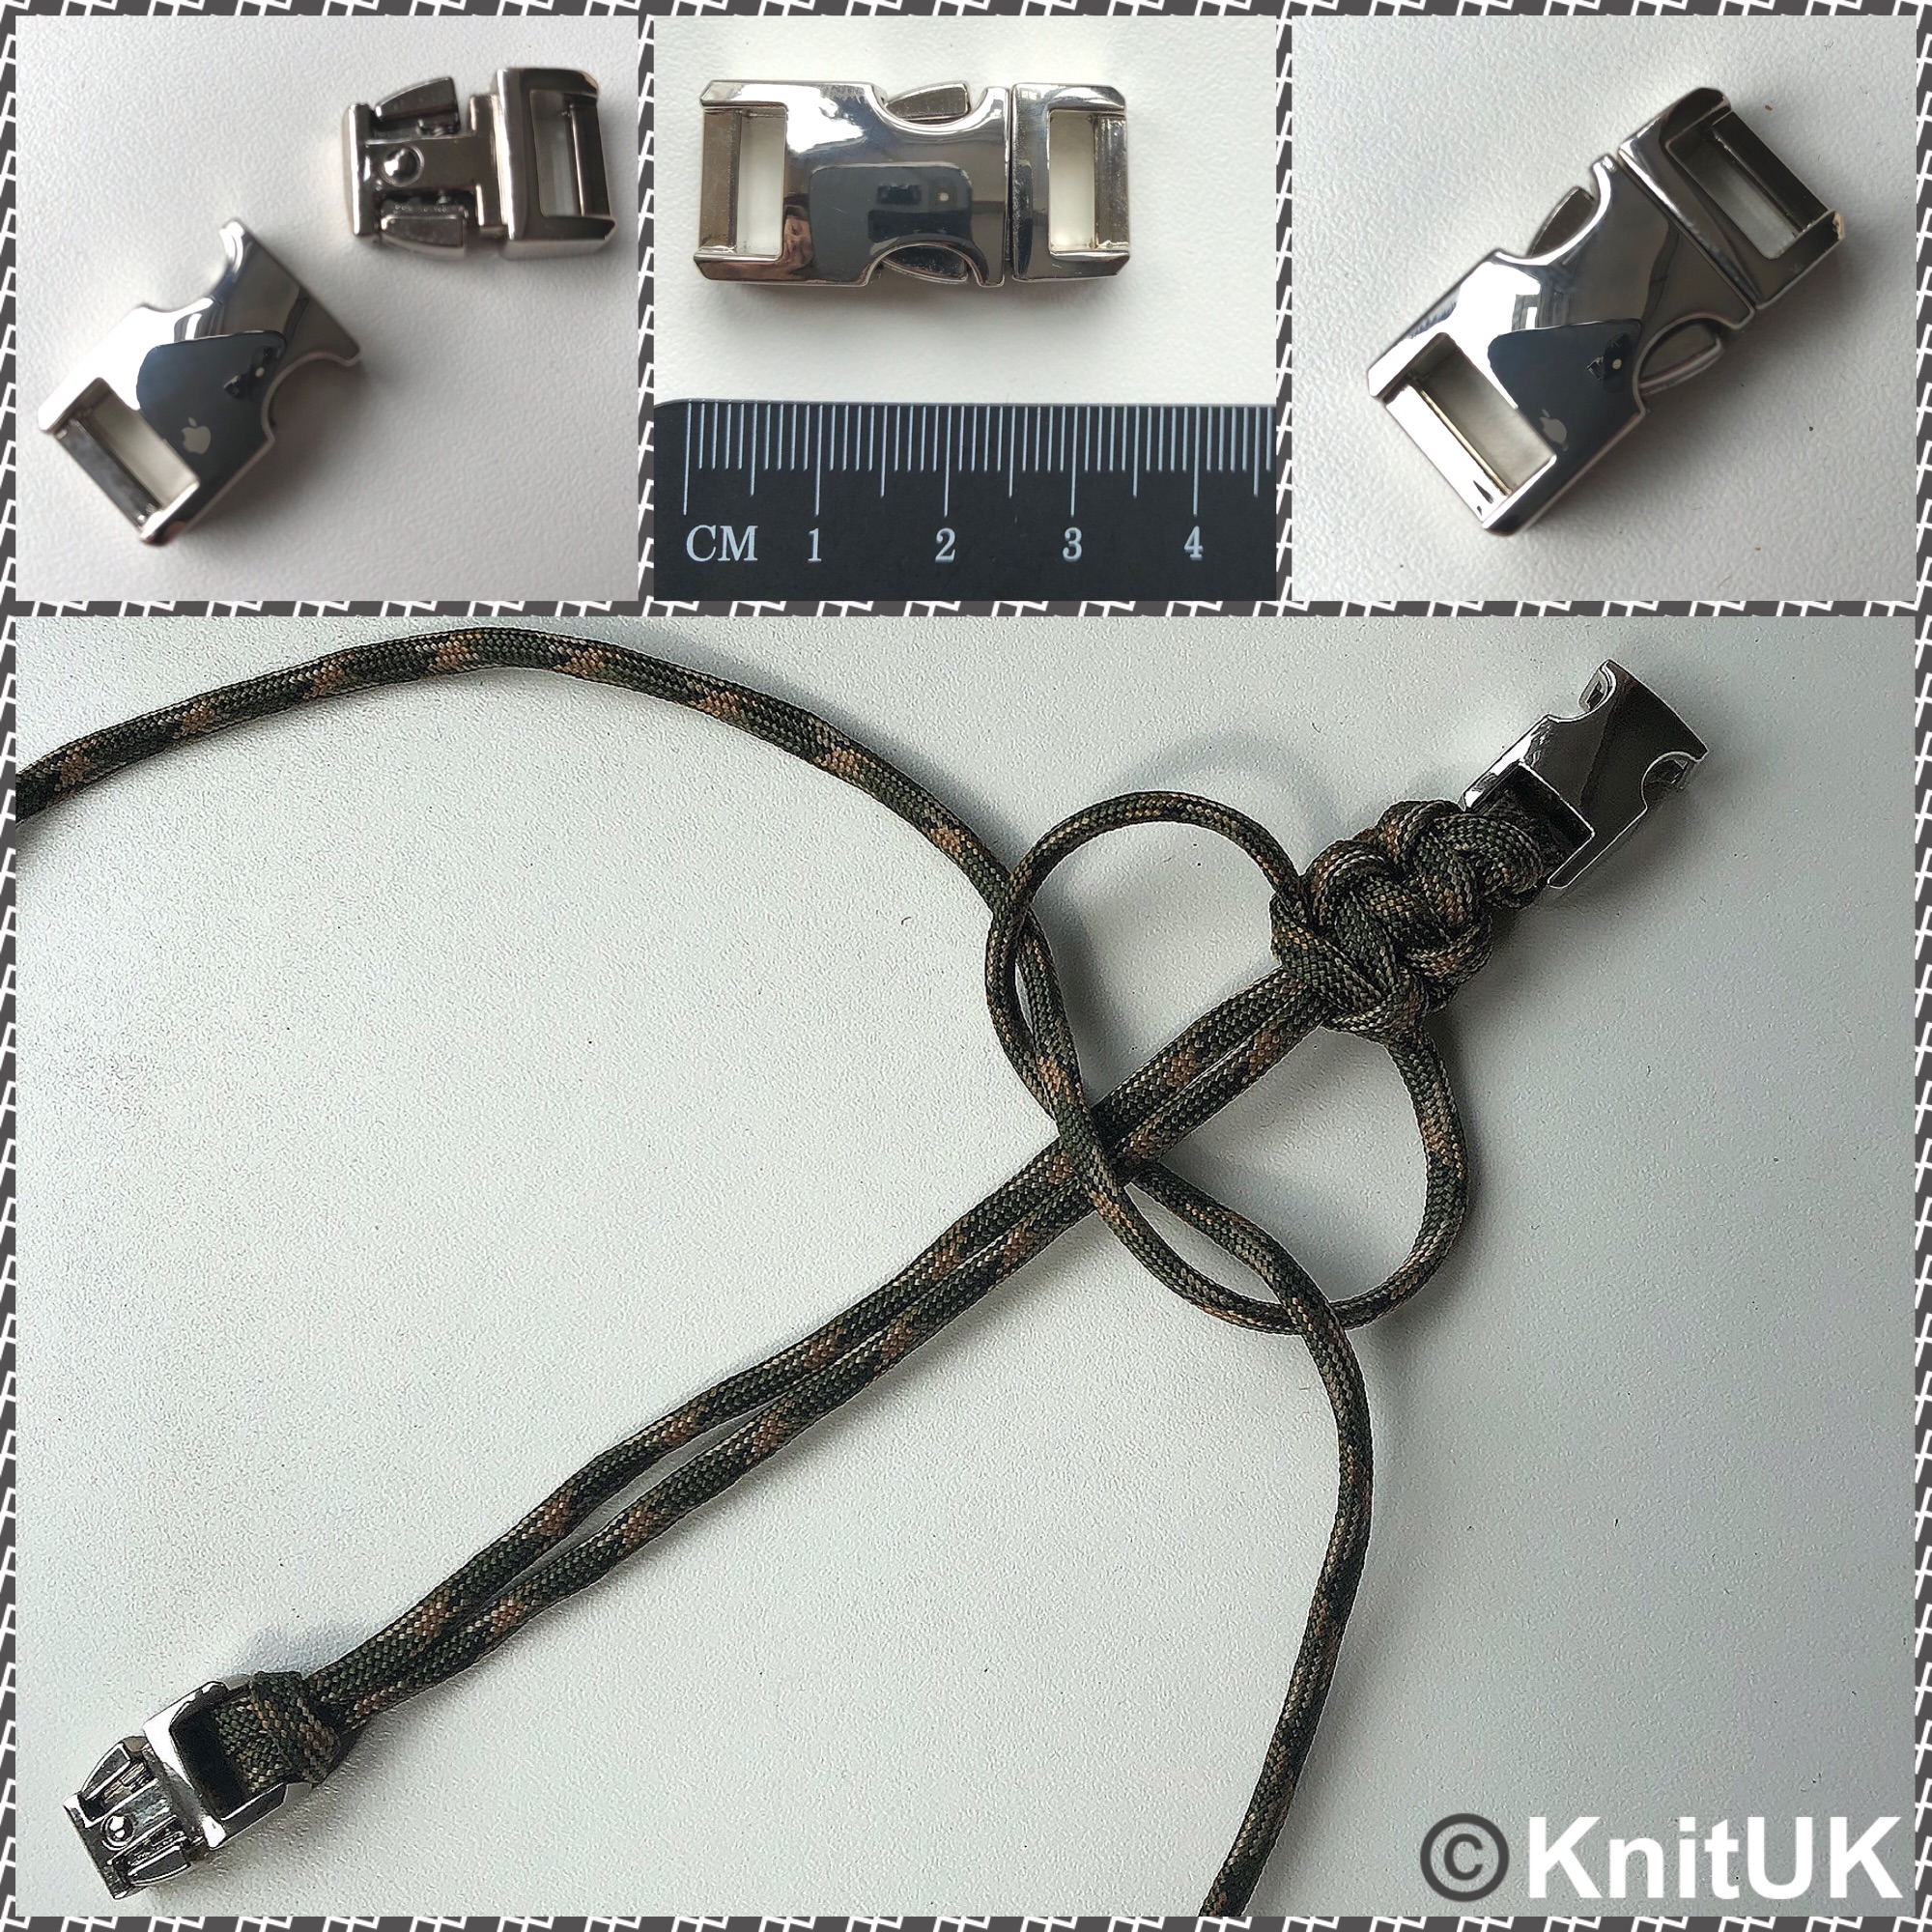 KnitUK metal buckle for paracord bracelet stainless steel colour